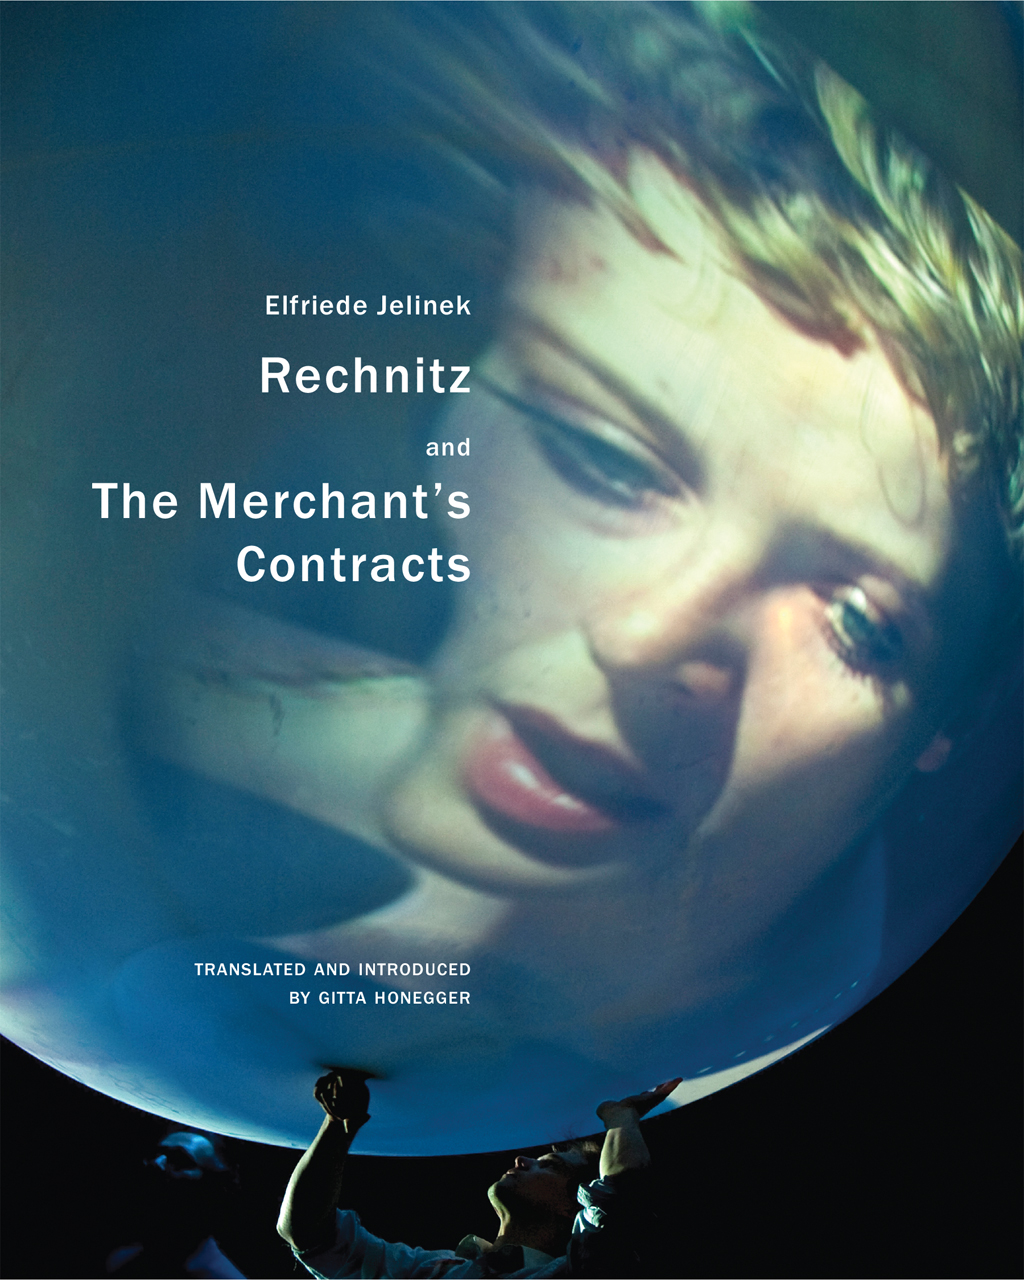 Rechnitz and The Merchant's Contracts